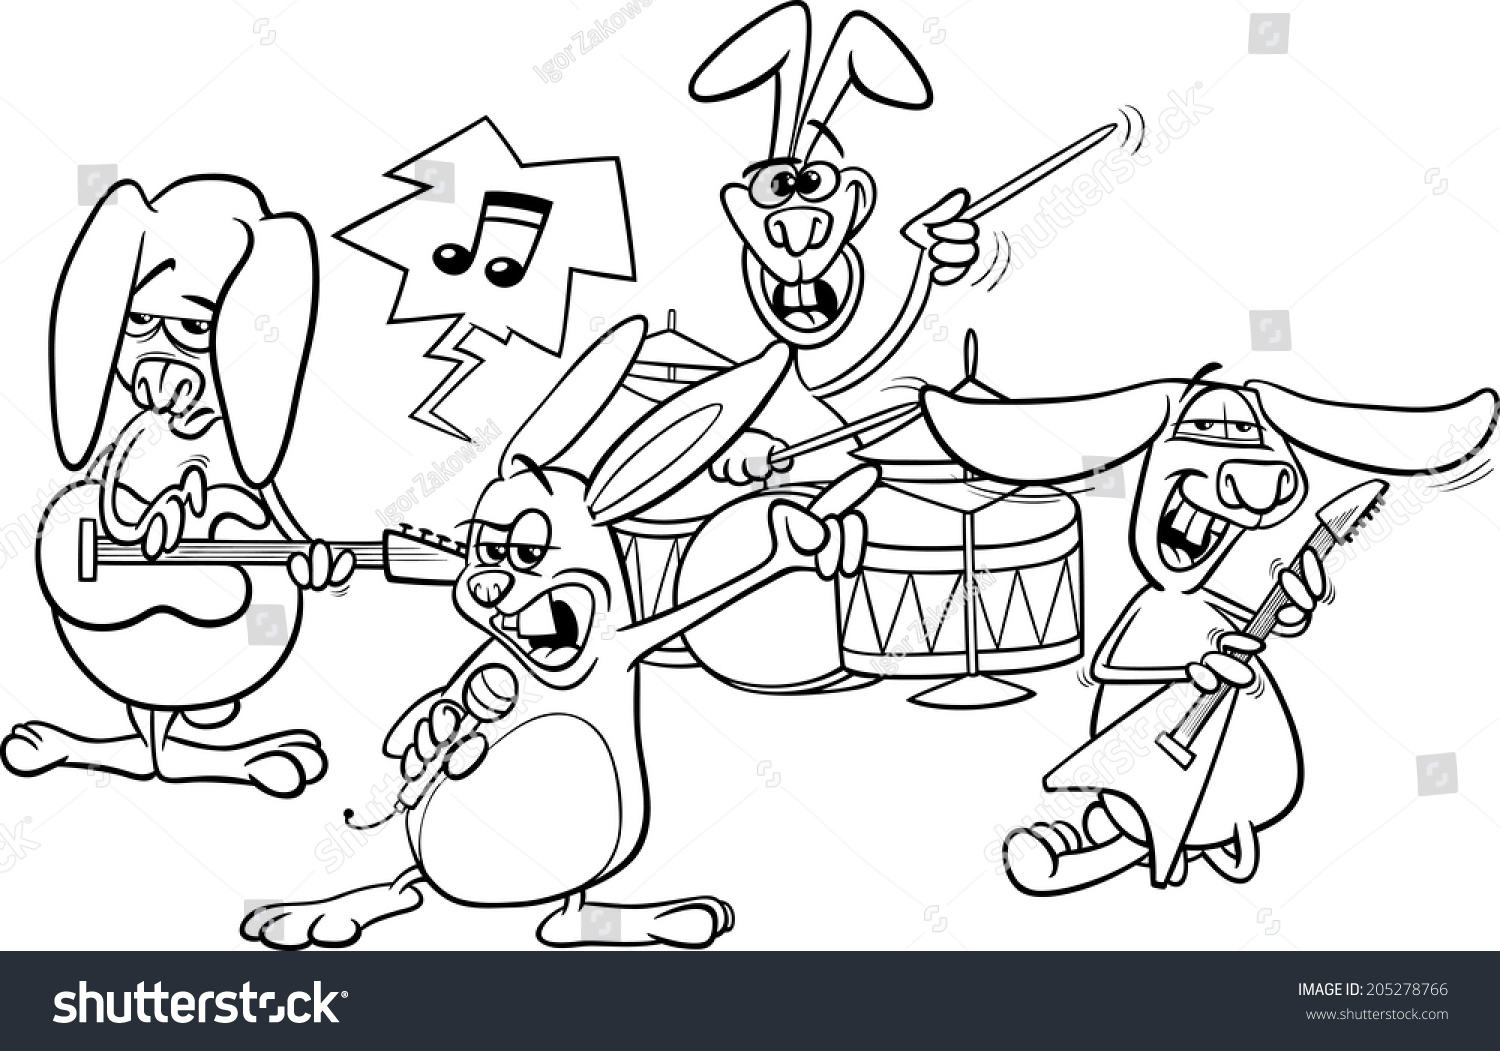 Coloring Book Or Page Cartoon Illustration Of Black And White Funny Rabbits Band Playing Rock Music